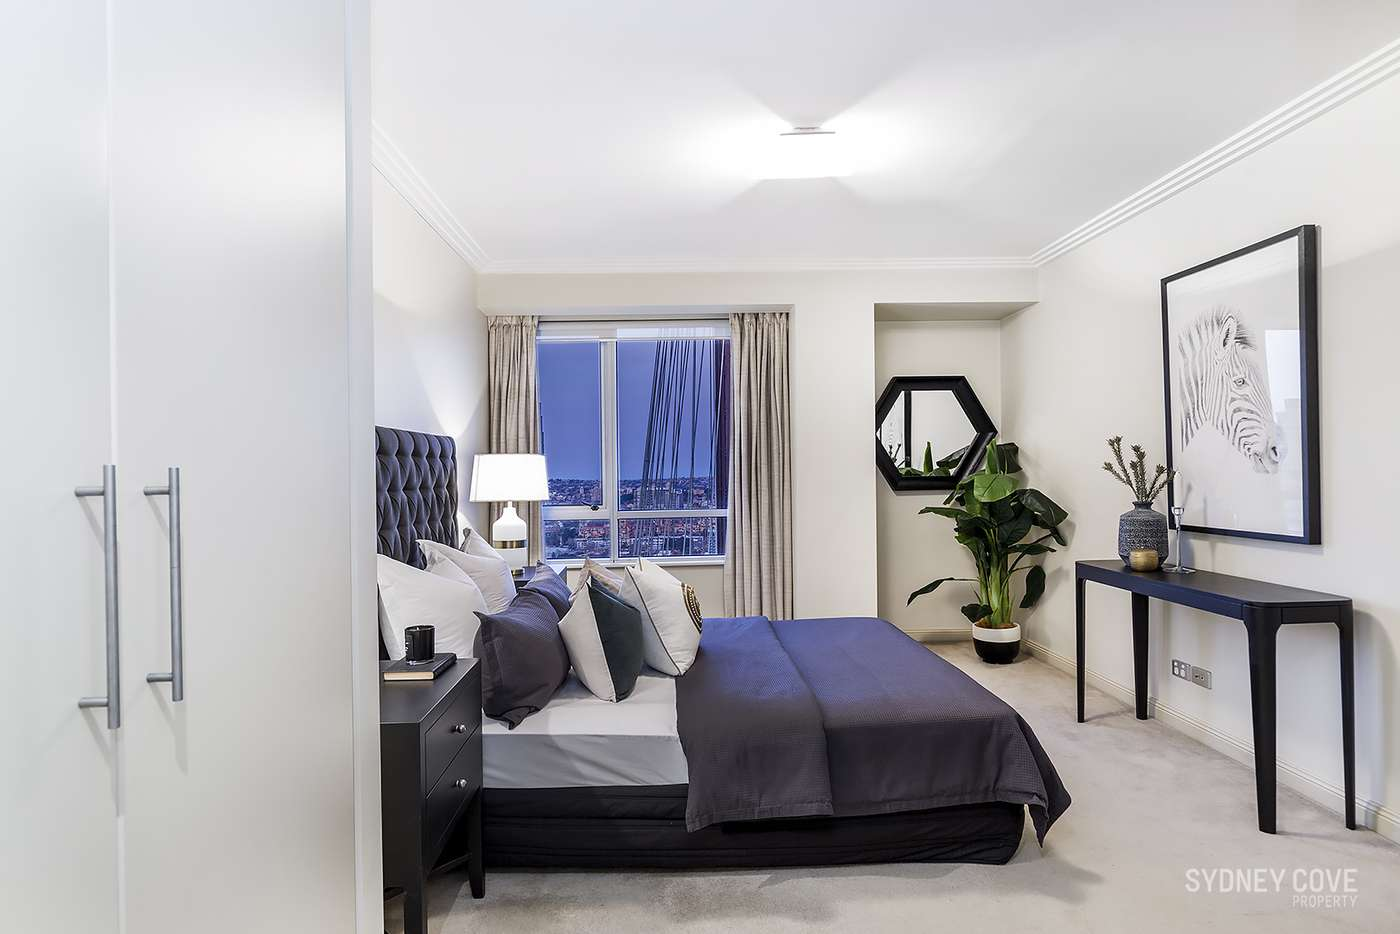 Fifth view of Homely apartment listing, 3104/68 Market Street, Sydney NSW 2000